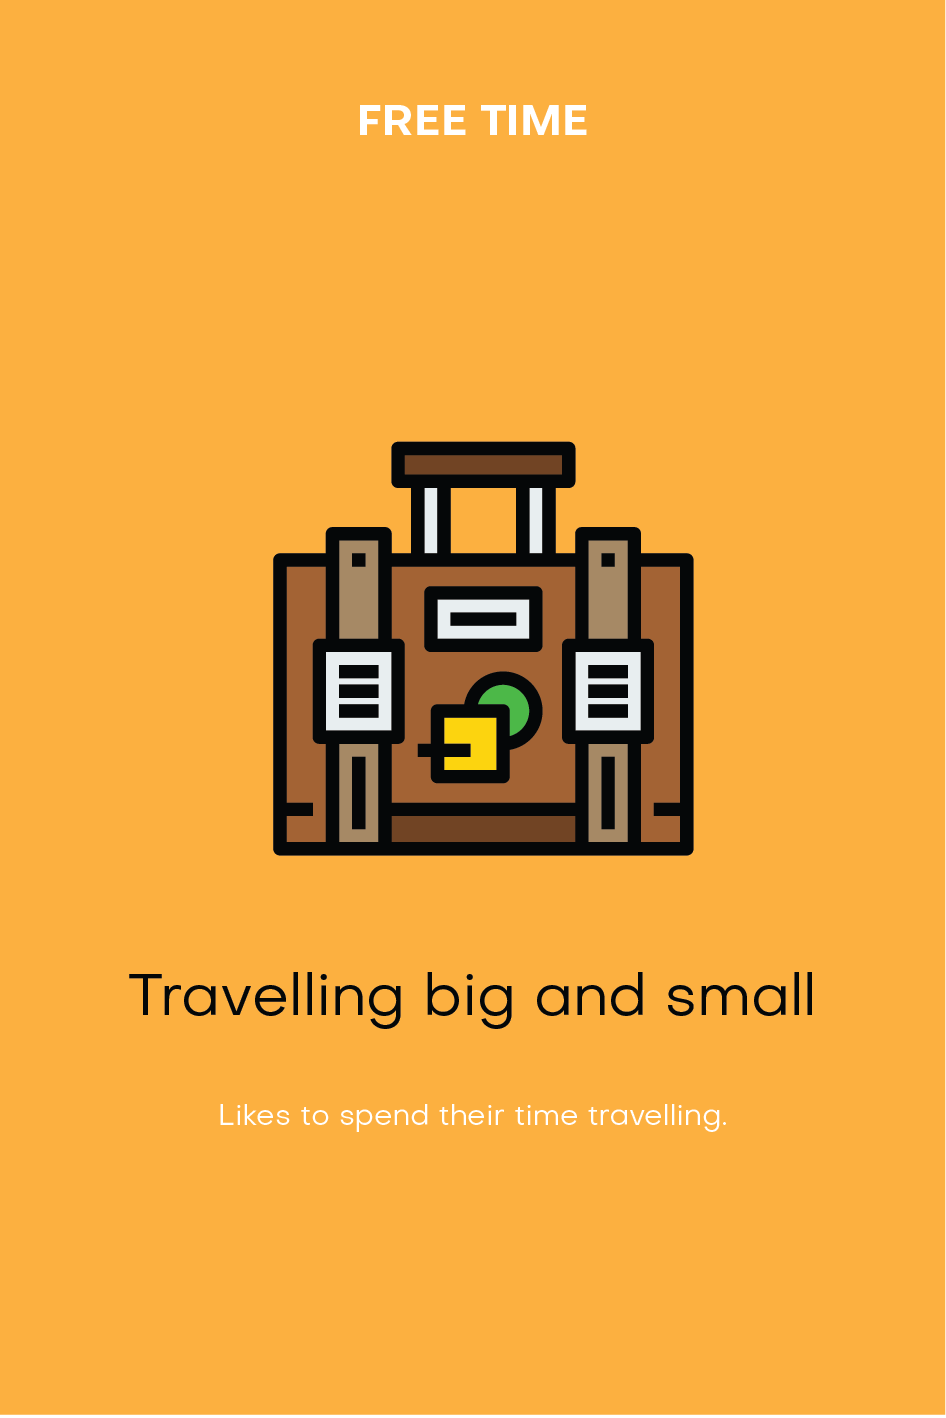 Archetype: Free Time, Traveling big and small